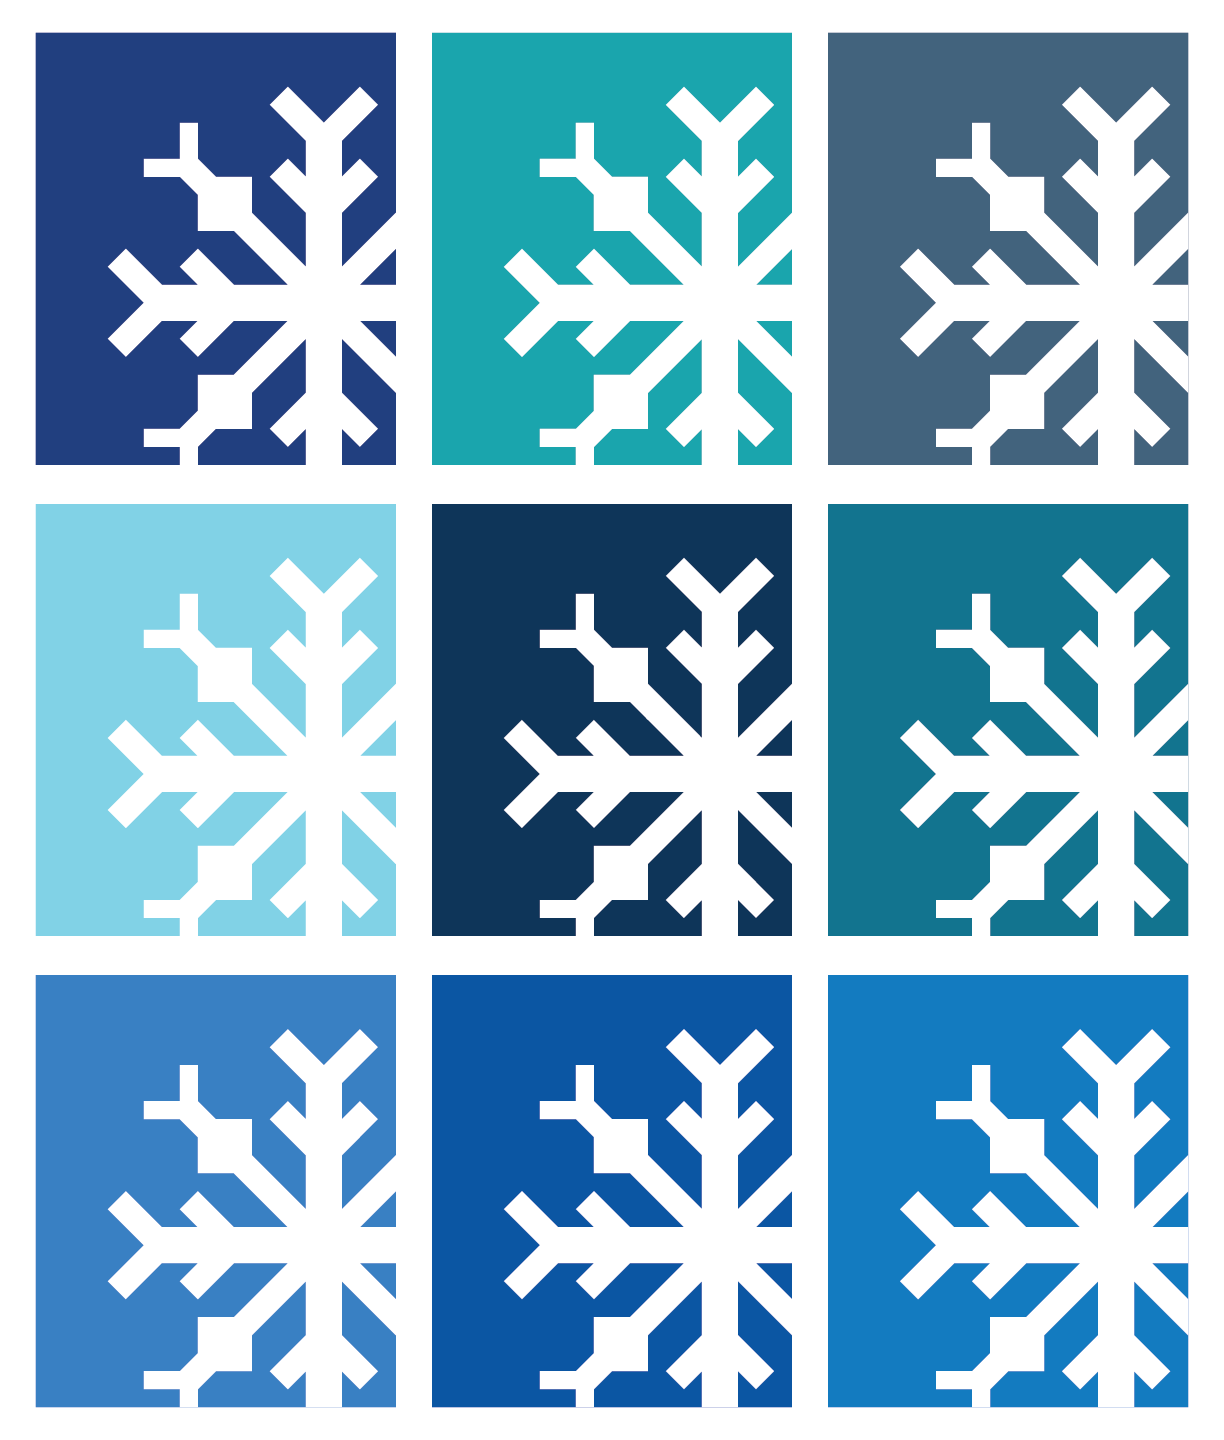 Snowflake Quilt in Blue Colors